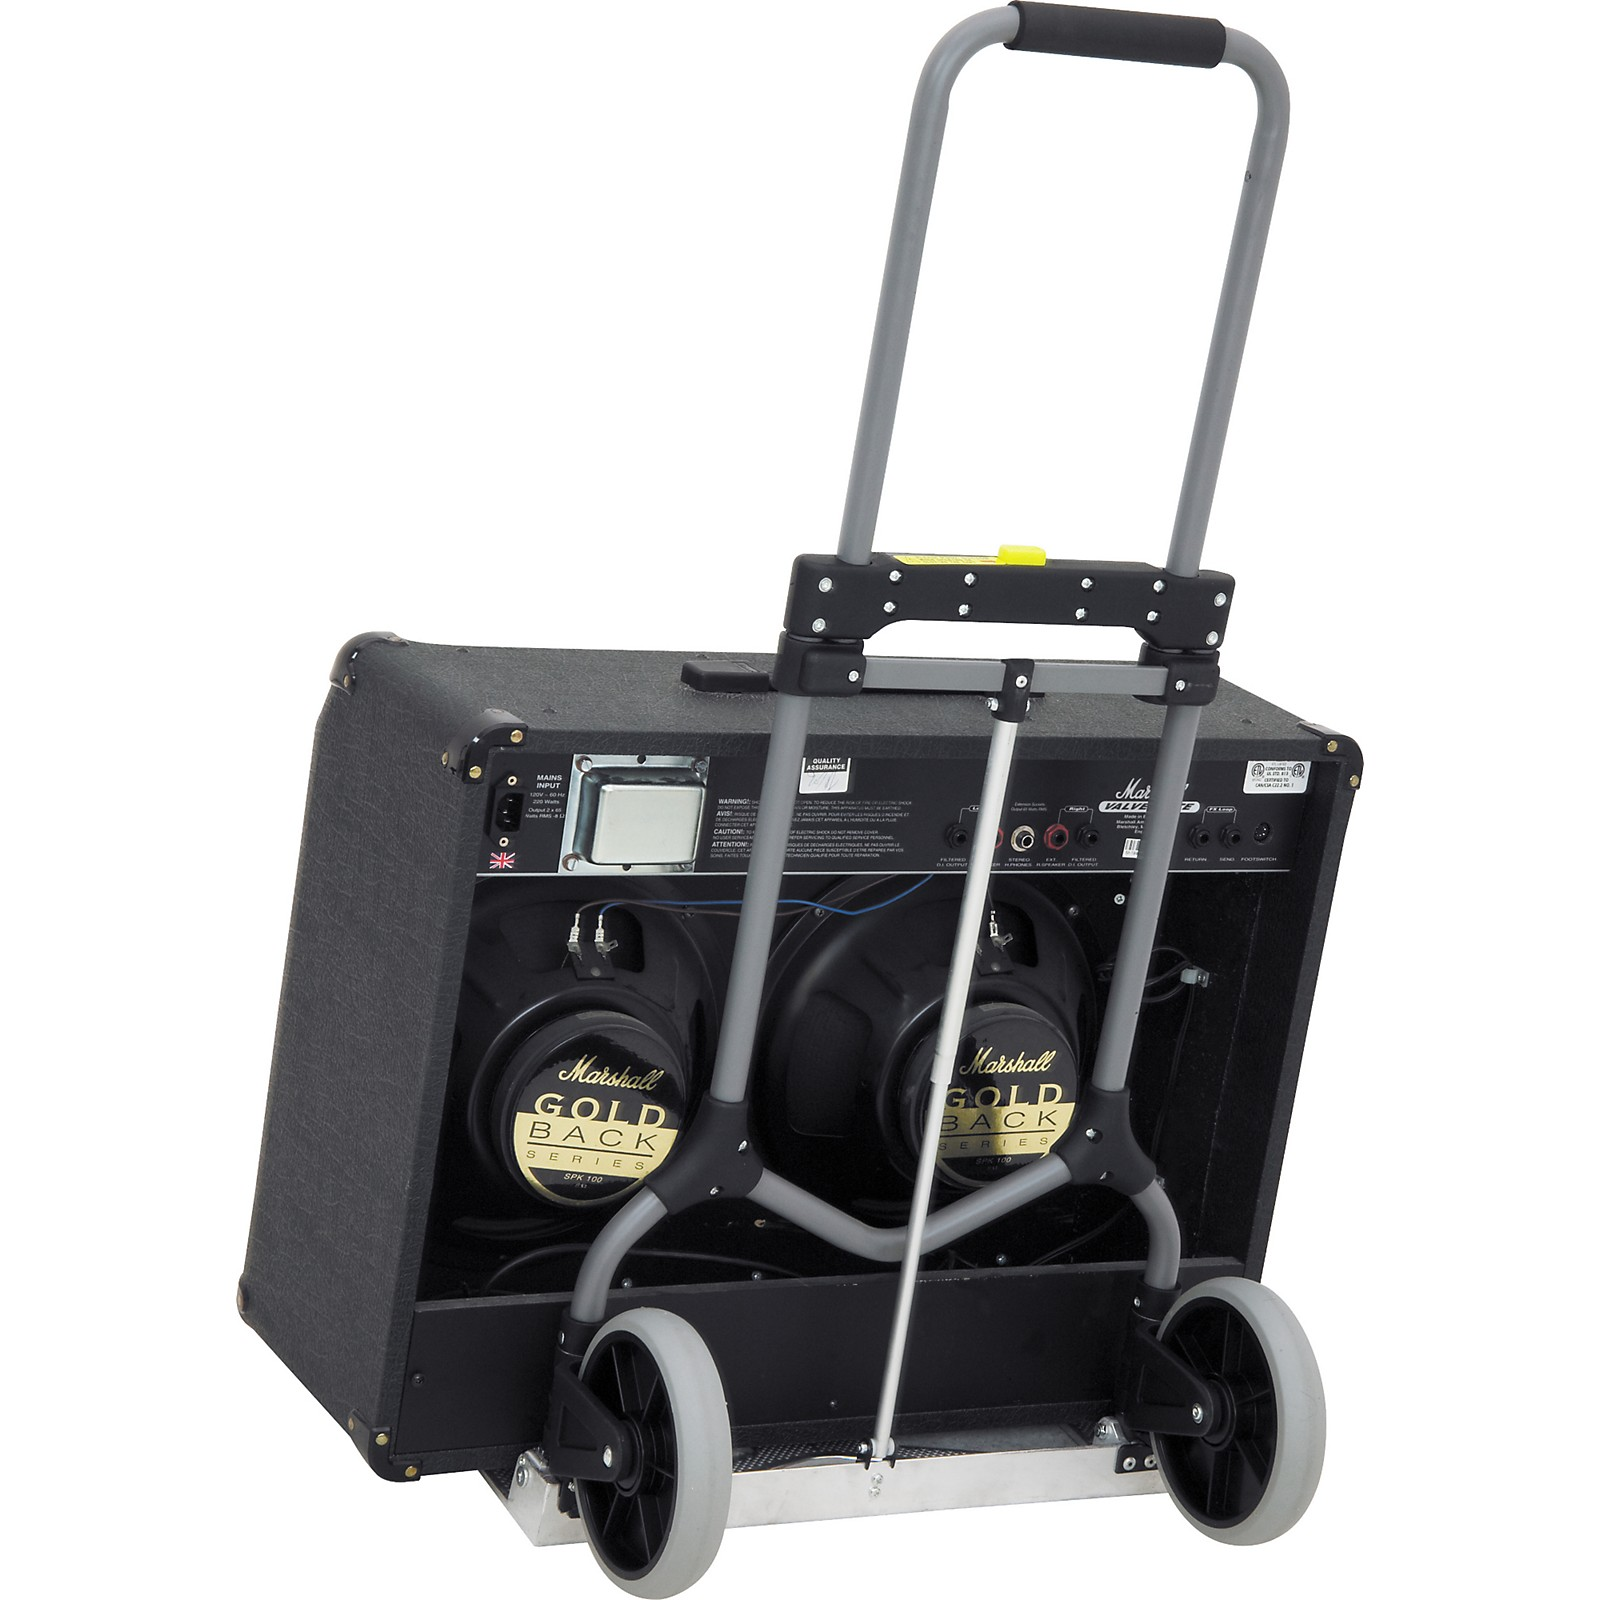 Musician's Gear Folding Hand Cart